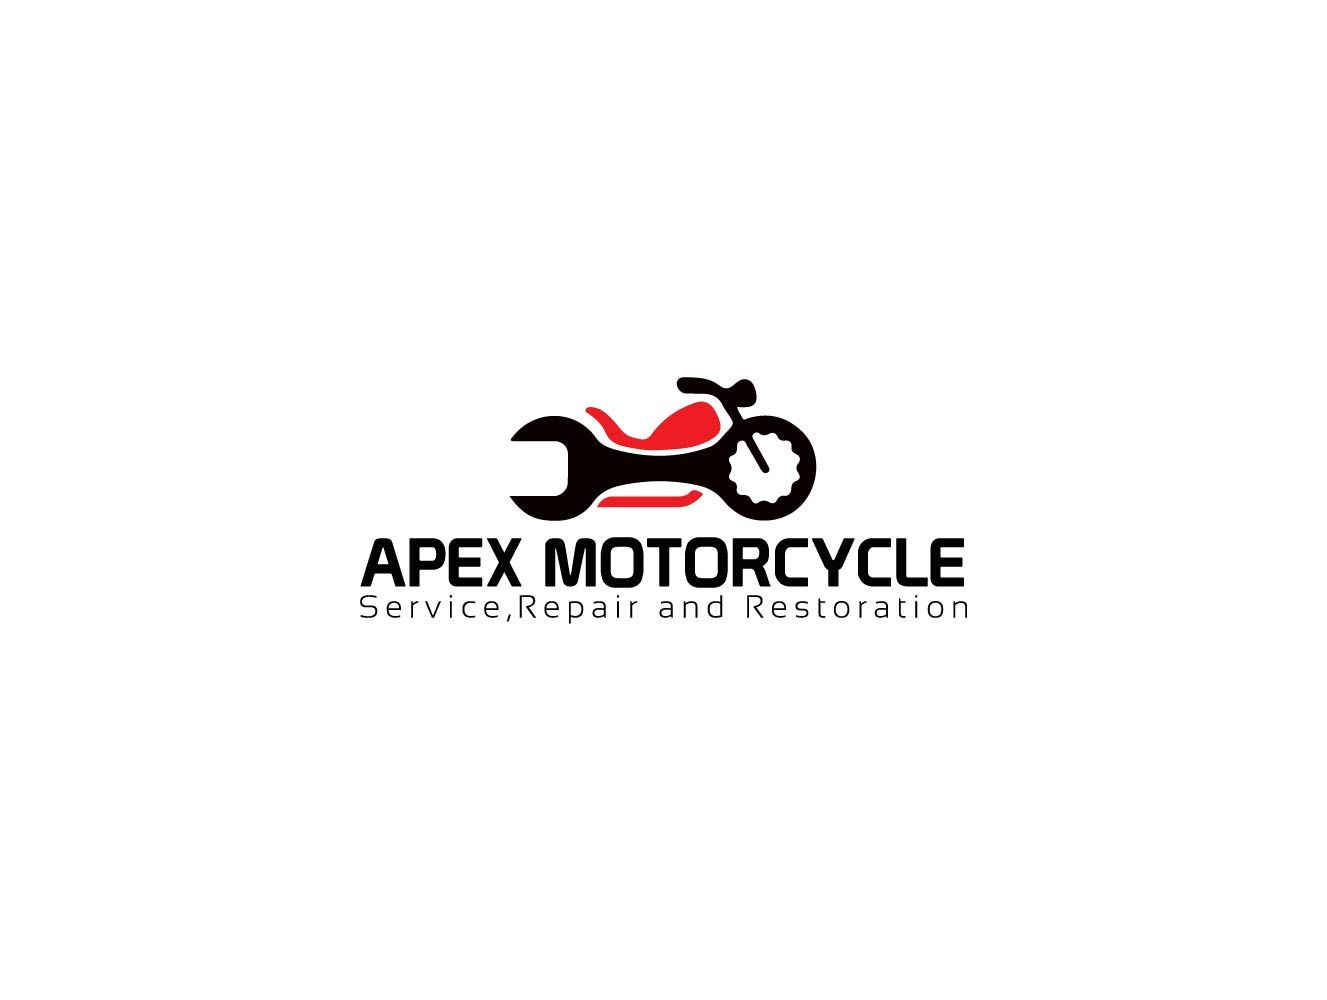 Apex Motorcycle